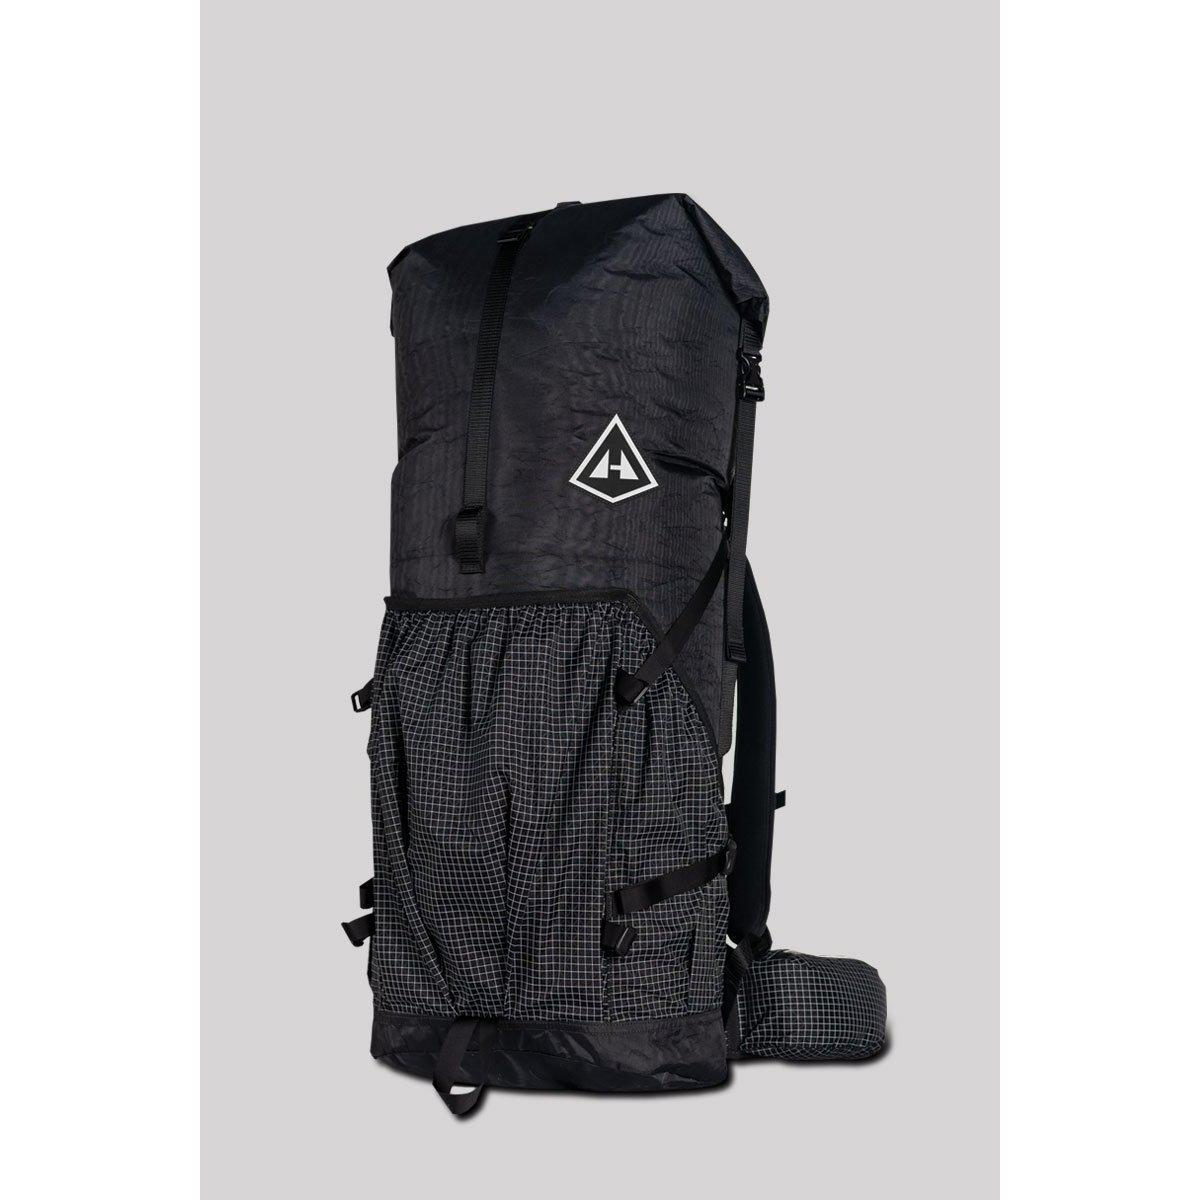 Hyperlite Mountain Gear - 3400 SOUTHWEST Ultralite Backpack-Hyperlite Mountain Gear-2 Foot Adventures